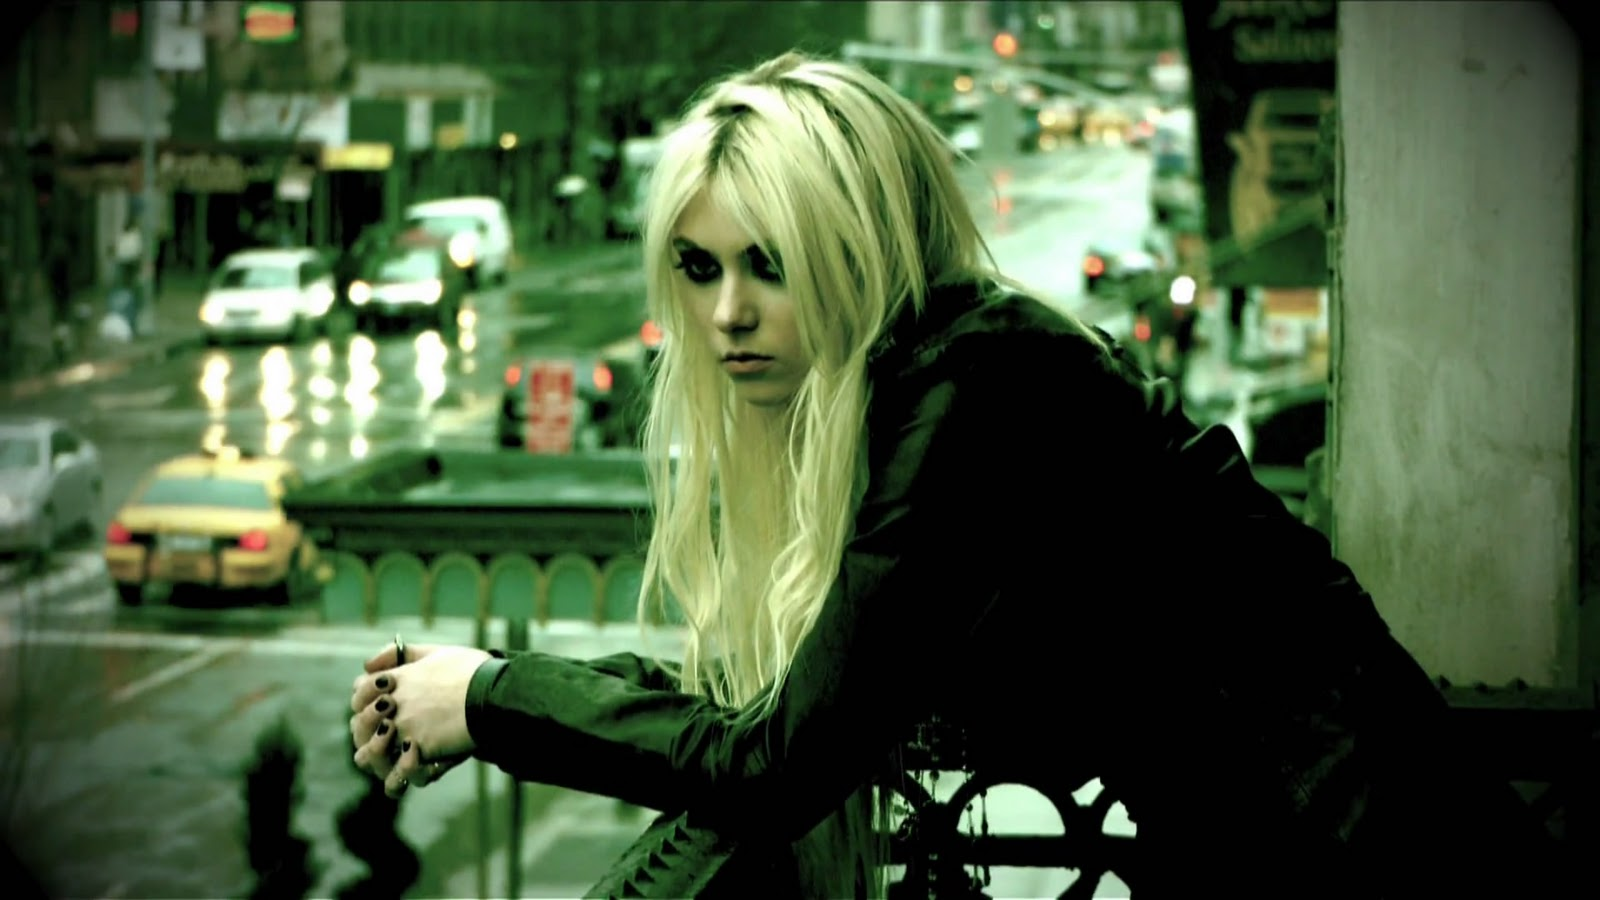 http://3.bp.blogspot.com/-cc1LlNat8Eo/Tt5flEgOr1I/AAAAAAAAATk/a6t0sJM7PYM/s1600/The+Pretty+Reckless+-+Make+Me+Wanna+Die+%2528Viral+Version%2529_%25281080p%2529%255Bvideoclipsdownloads.blogspot.com%255D.mp4_snapshot_01.12_%255B2011.12.06_16.28.58%255D.jpg